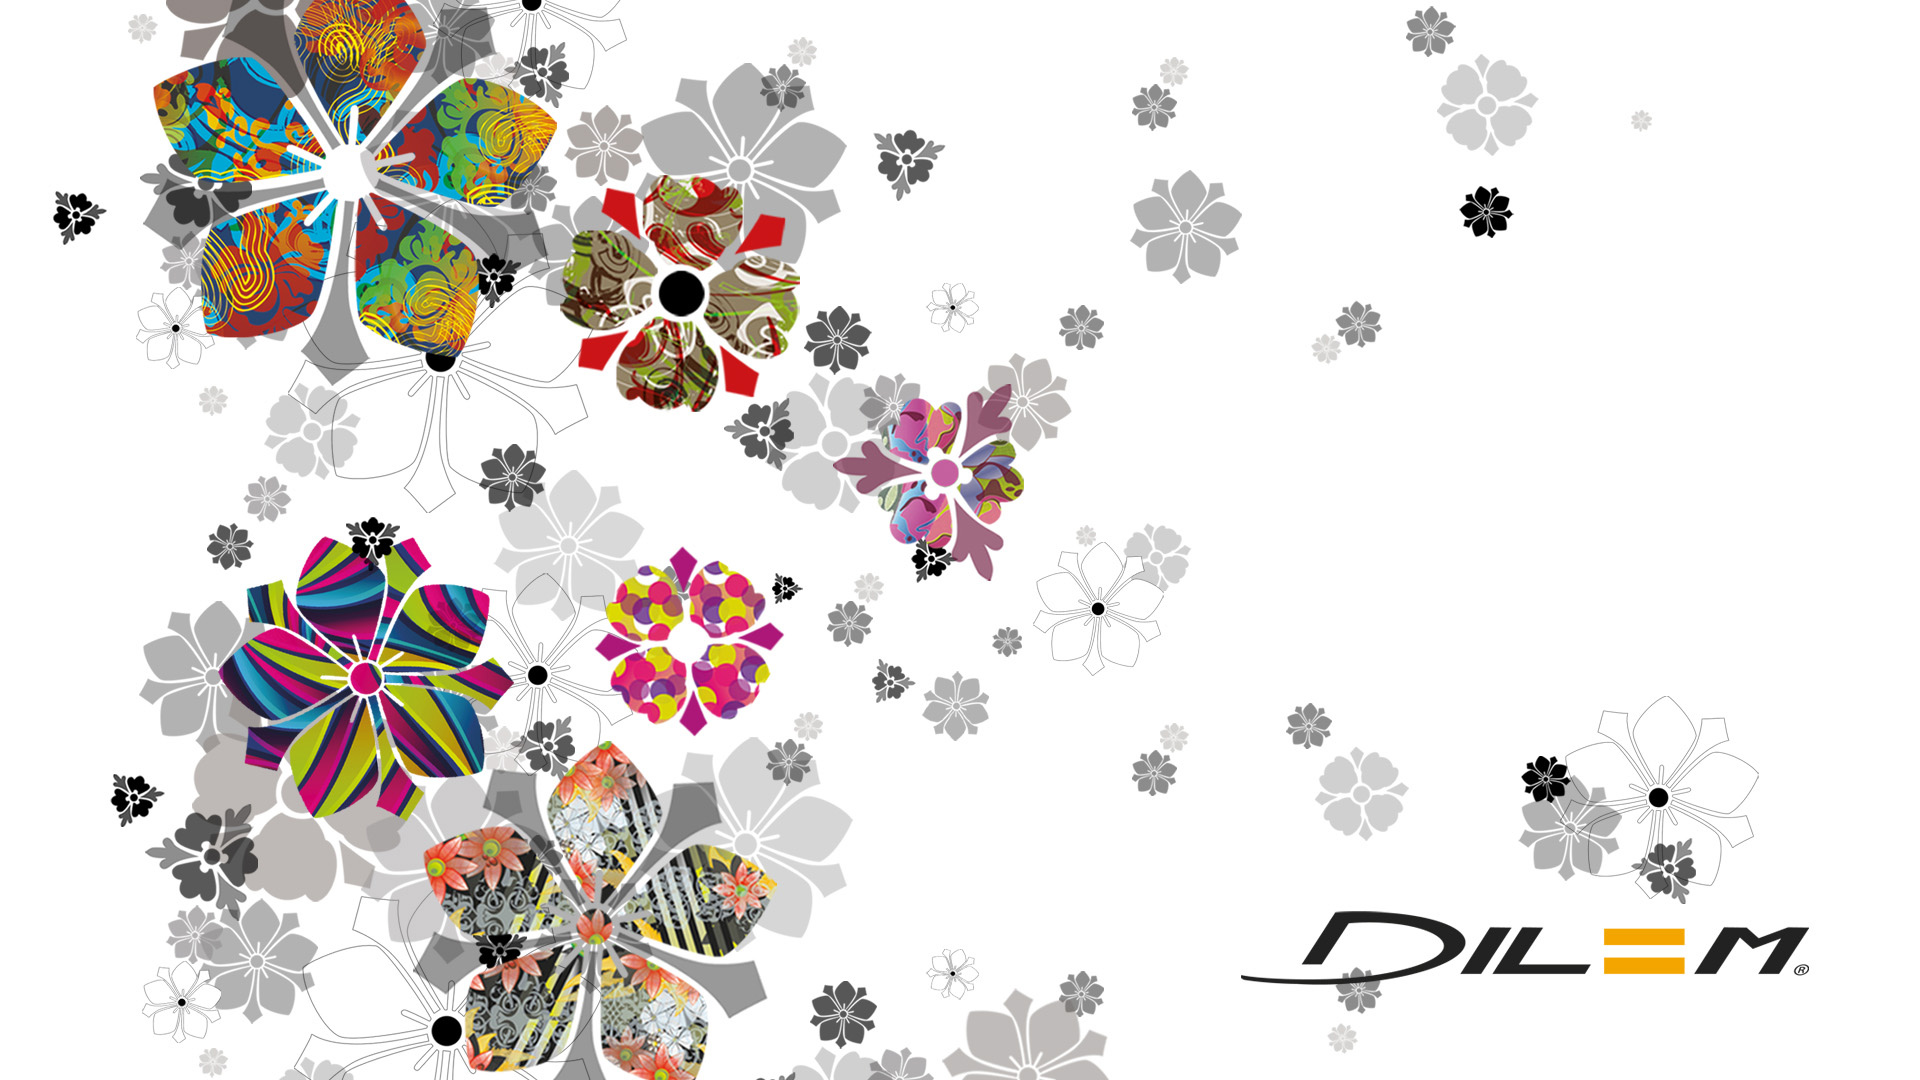 Wallpapers > The Dilem Tribe